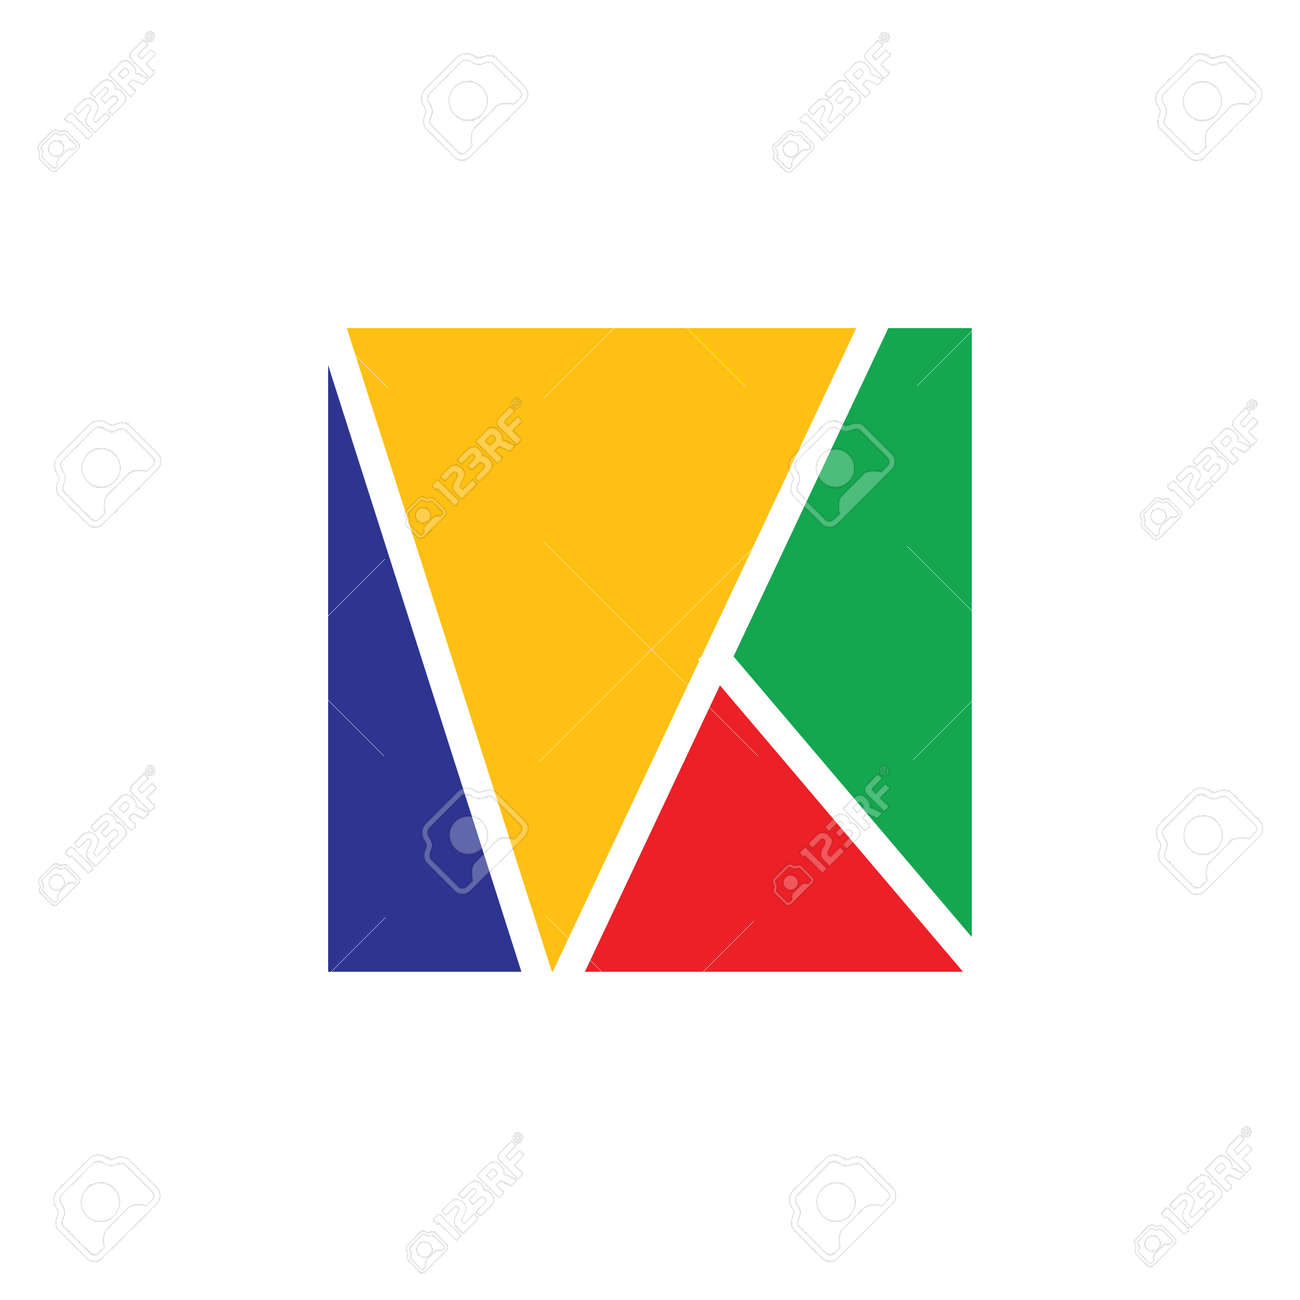 abstract letter vk square colorful logo - 151955535